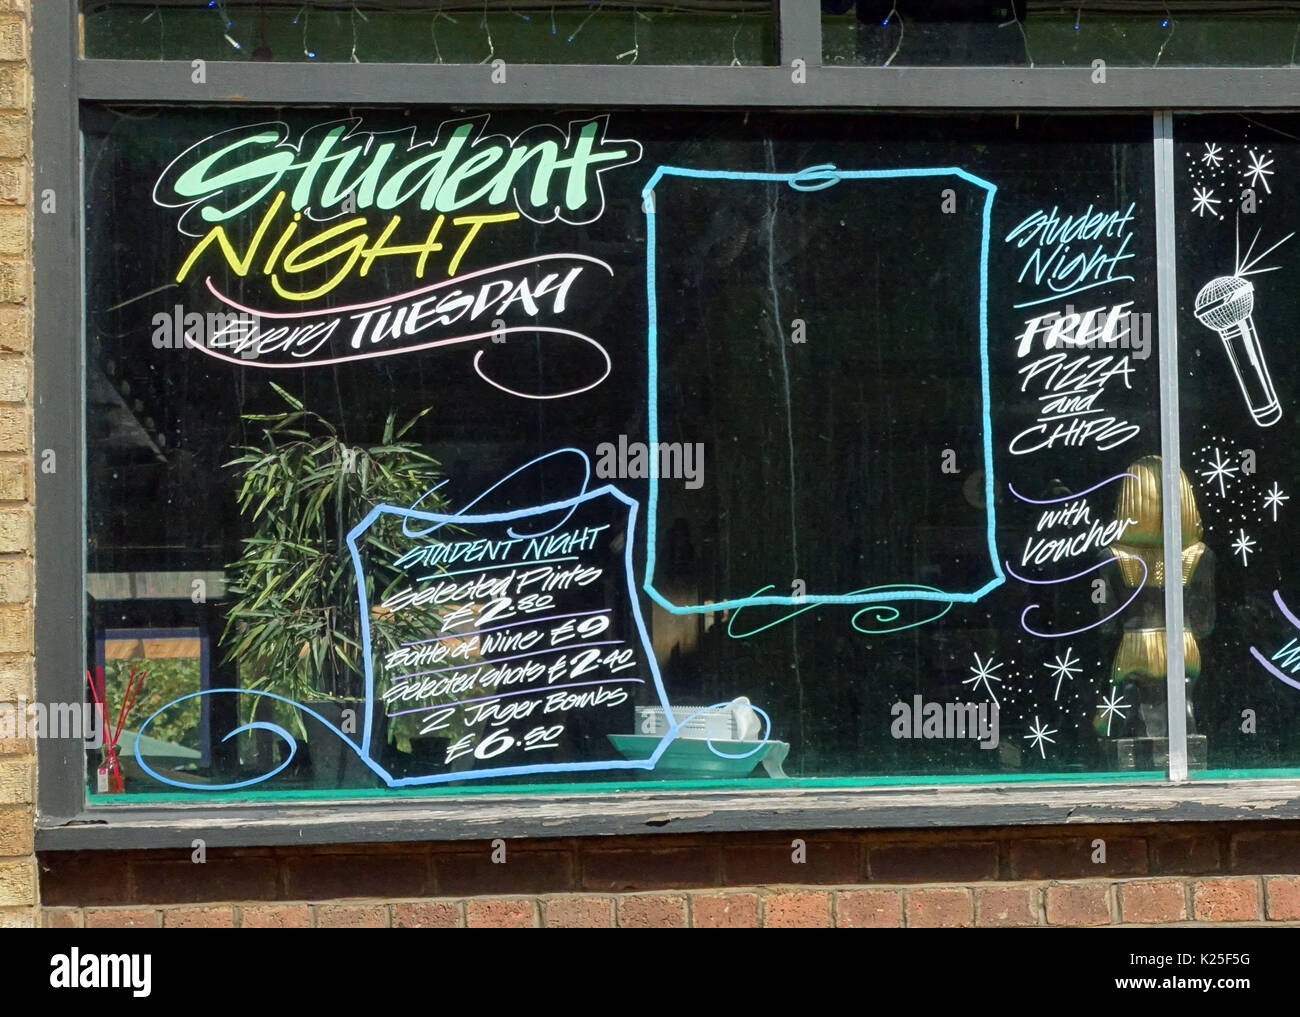 Student Night promotions at Black Horse pub, Great Dover Street, London SE1 - Stock Image